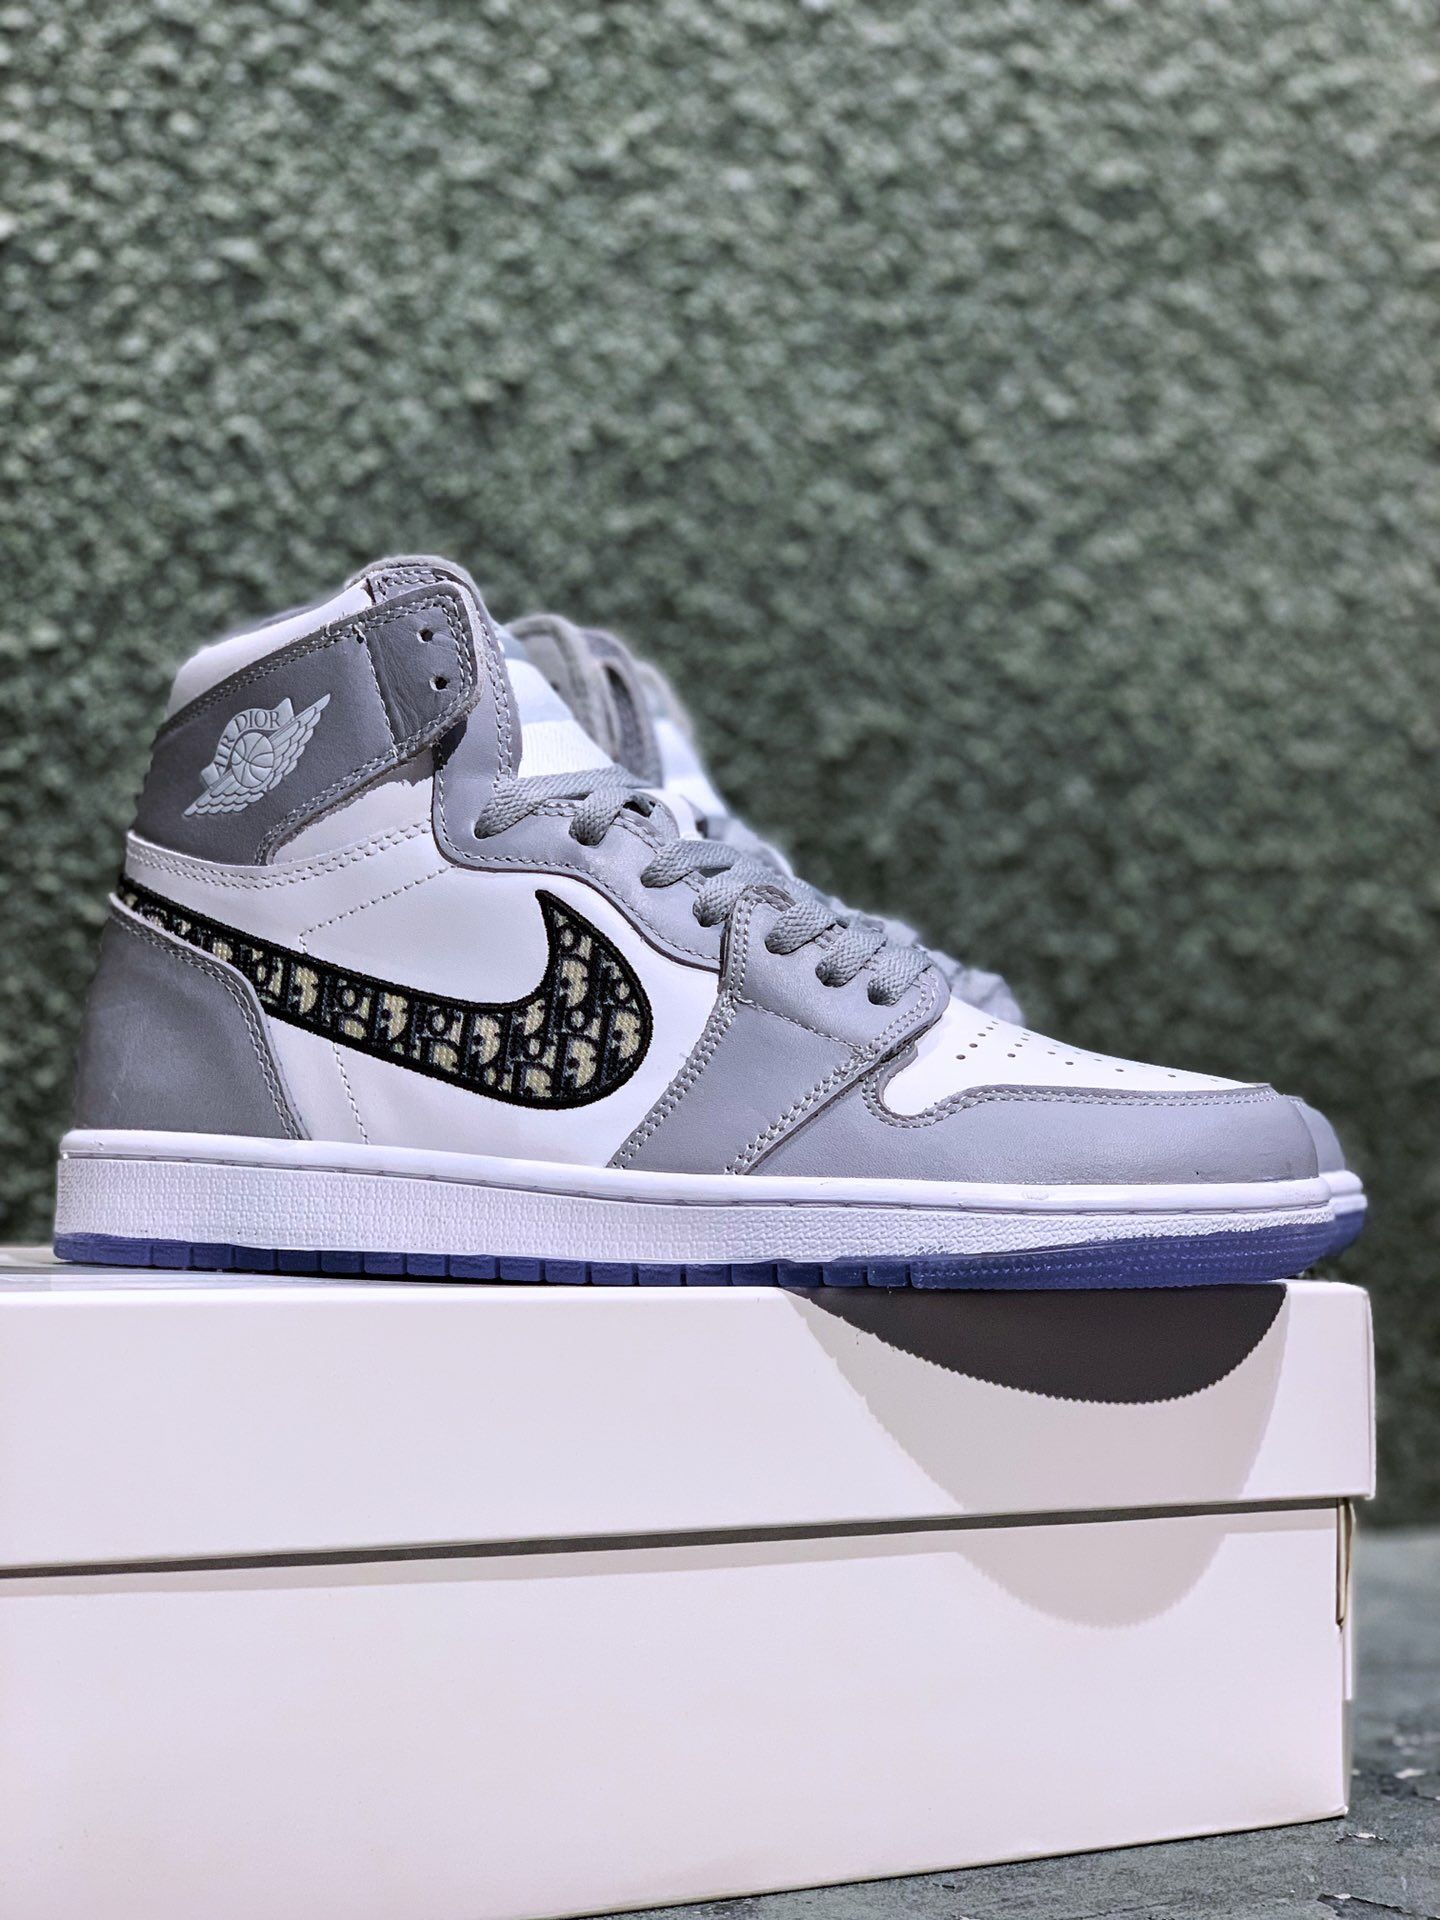 harina Subir Calígrafo  Dior x Air Jordan 1 High OG NIKE CK6636-101 | Nike, Nike shoes, Air jordans